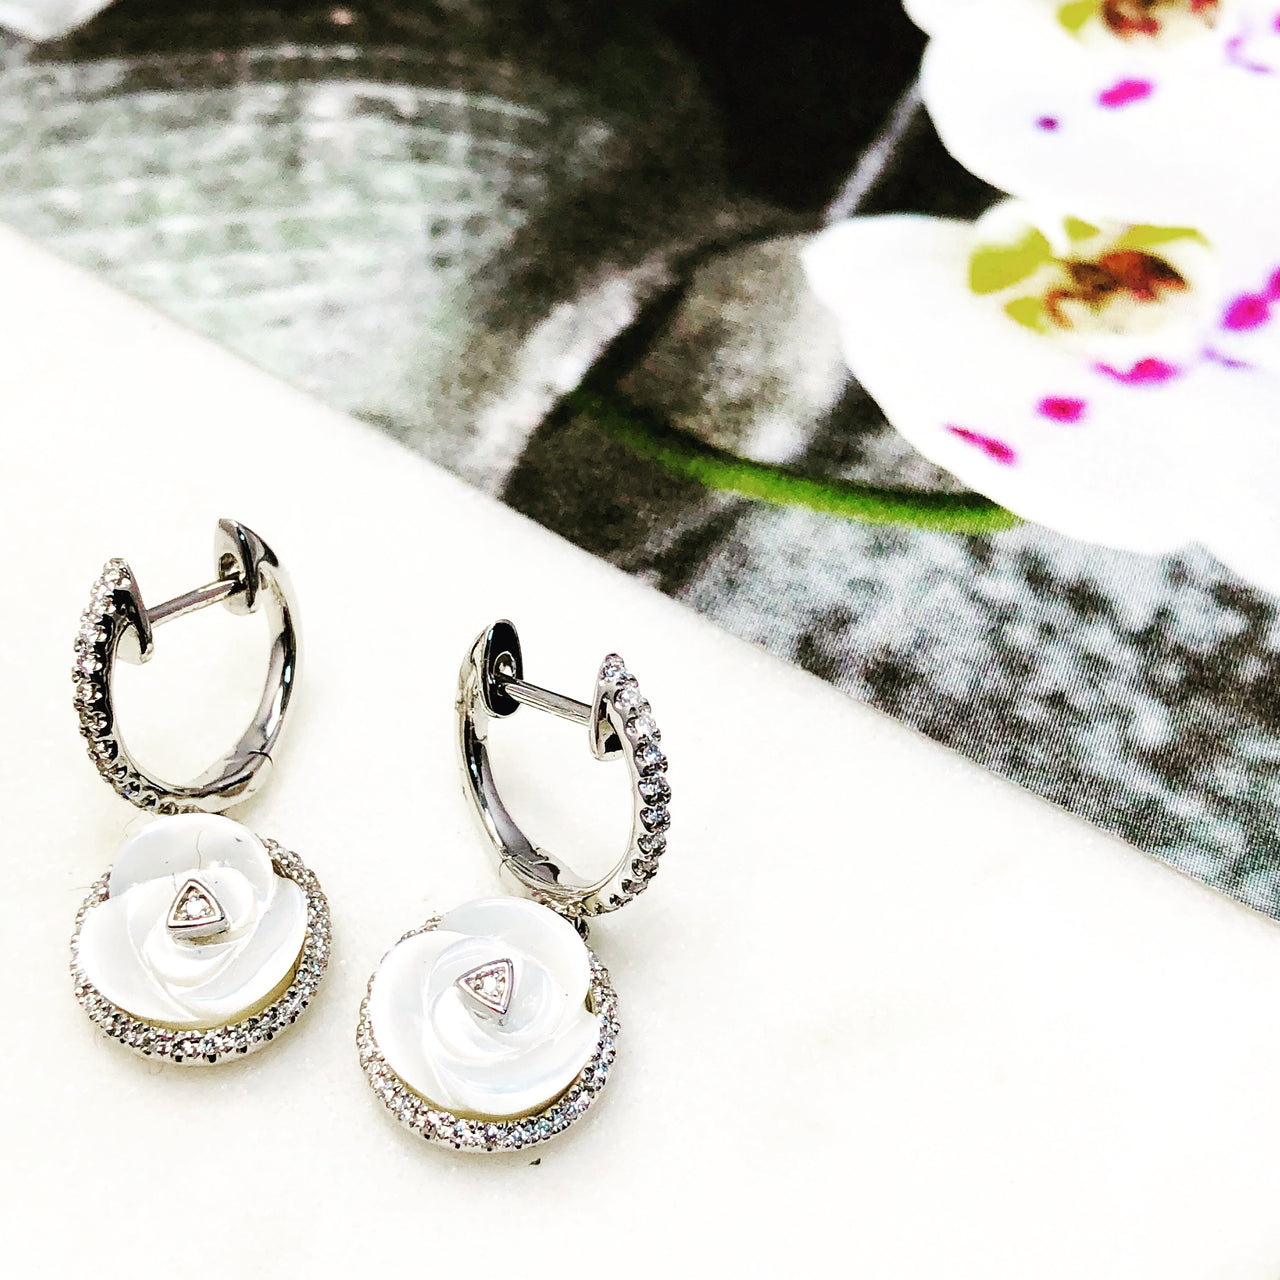 14k White Gold Mother of Pearl and Diamond Earrings.